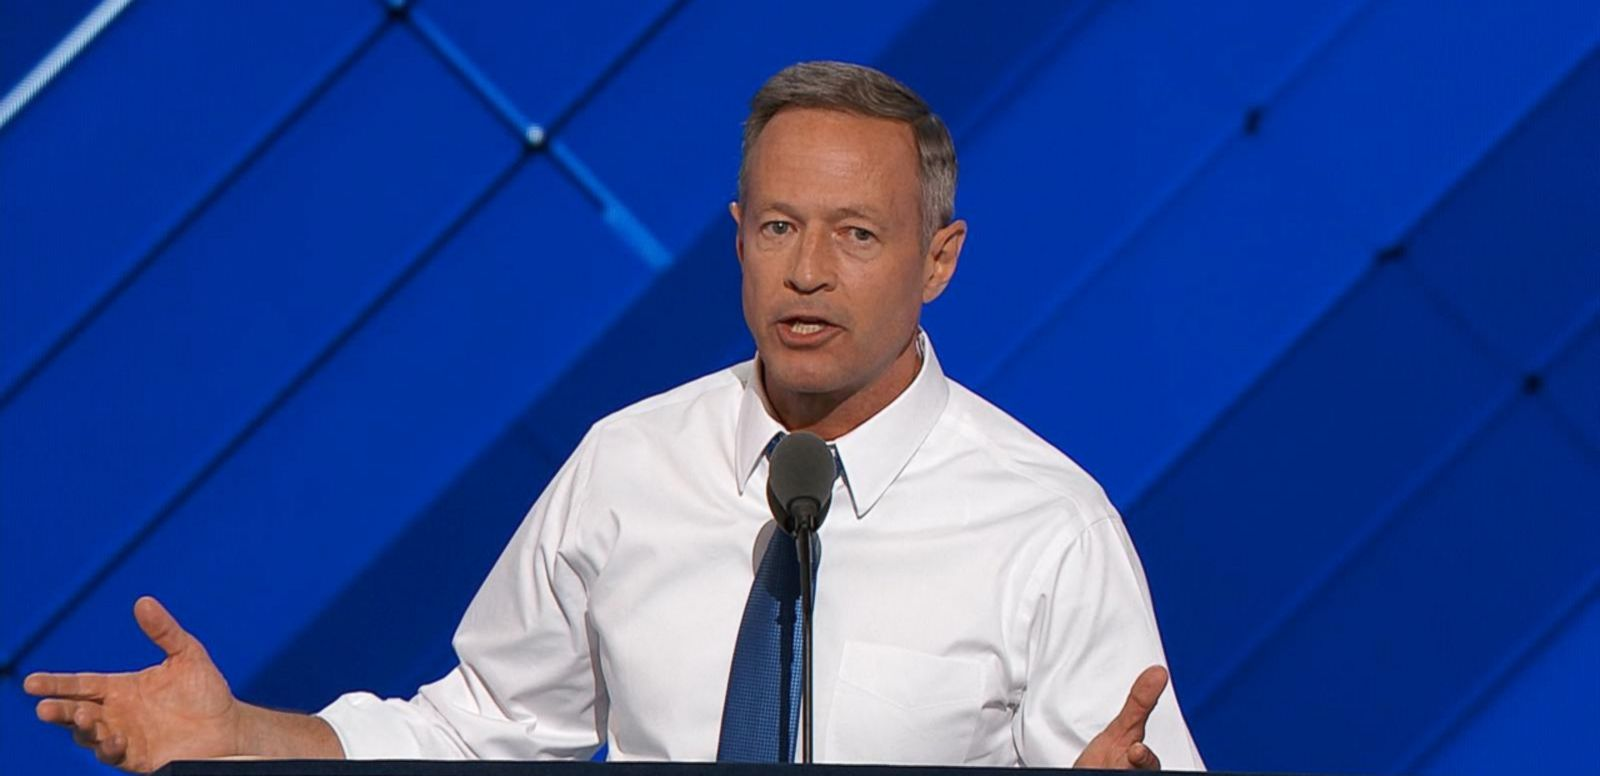 VIDEO: Martin O'Malley: 'Hilary Clinton Is as Tough as They Come'